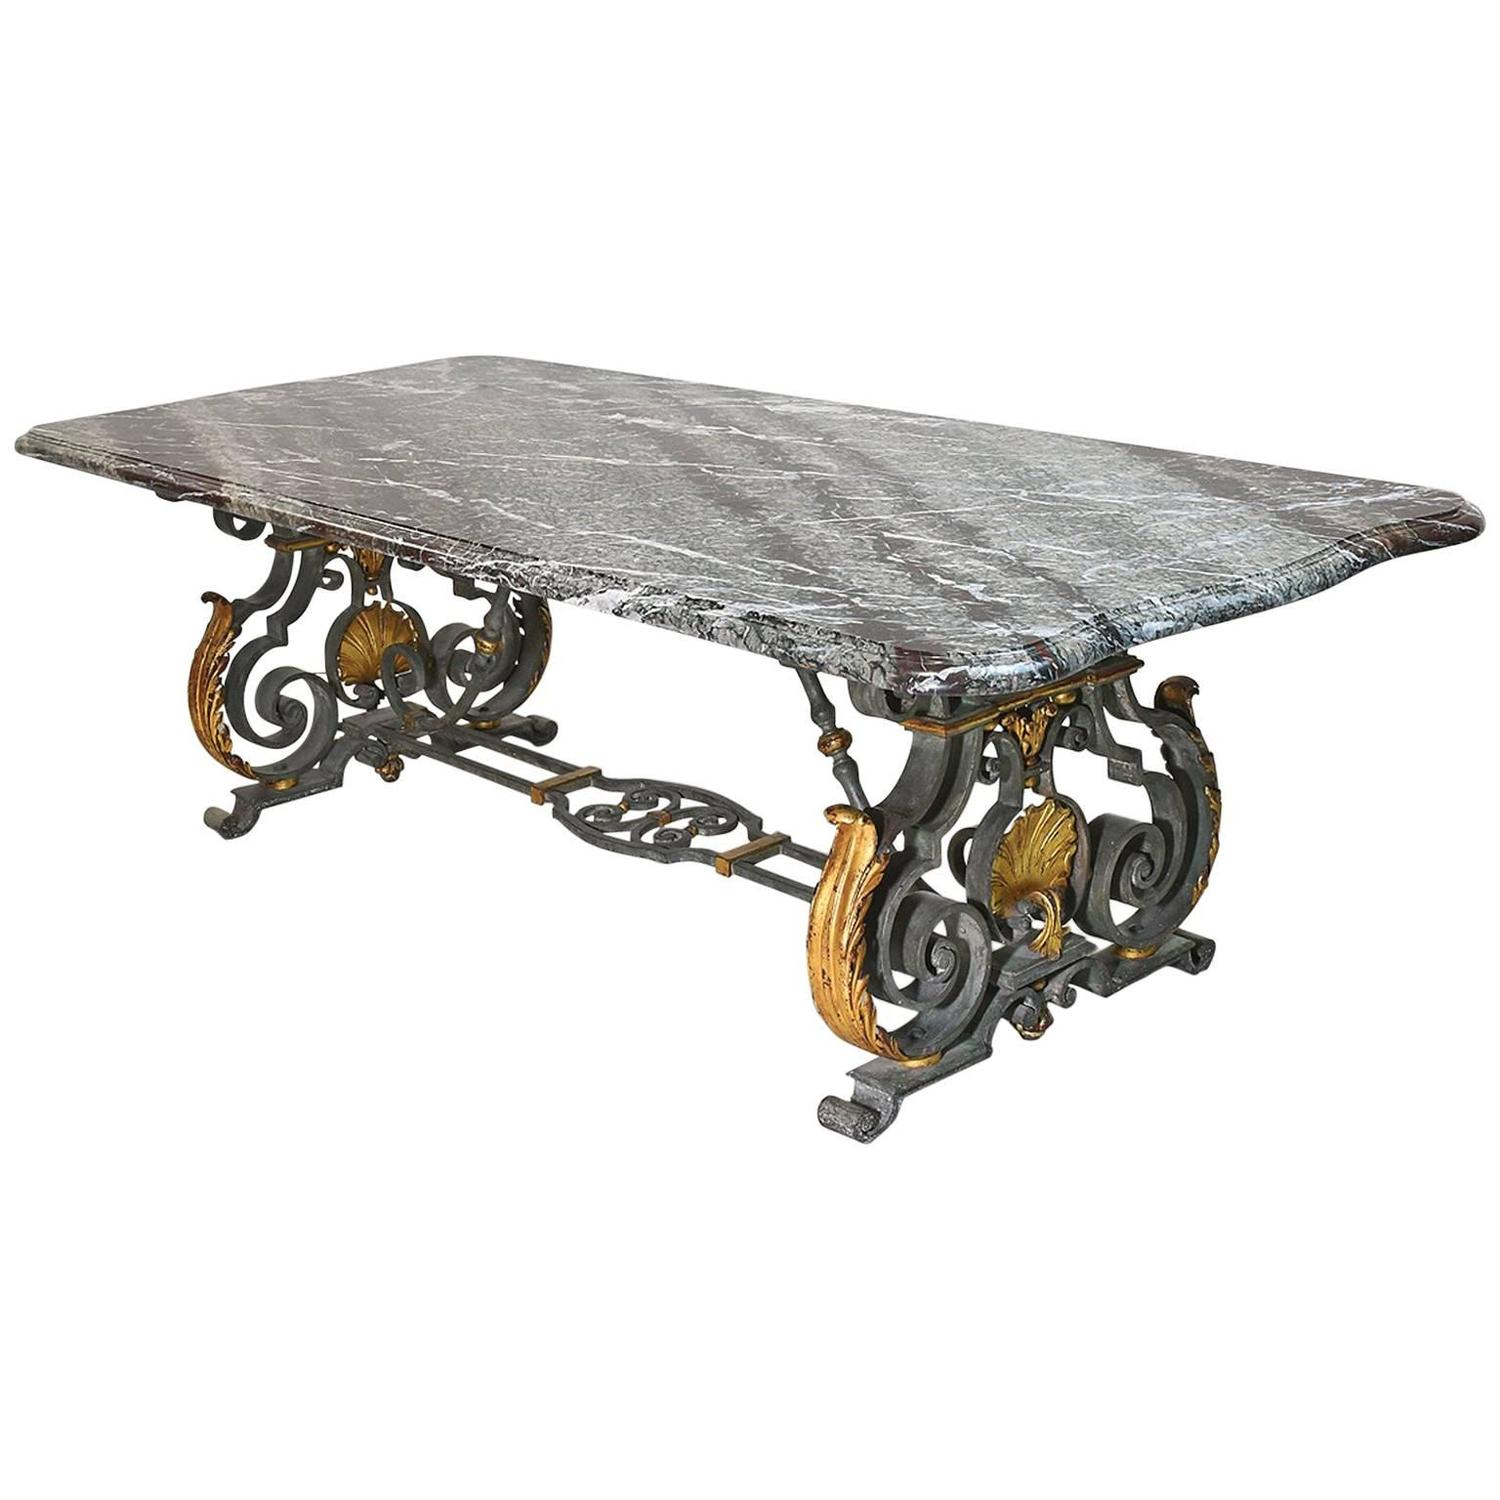 20th Century  French Rococo Style Marble Top Dining Table with Forged Iron  Base. Rococo Dining Room Tables   6 For Sale at 1stdibs